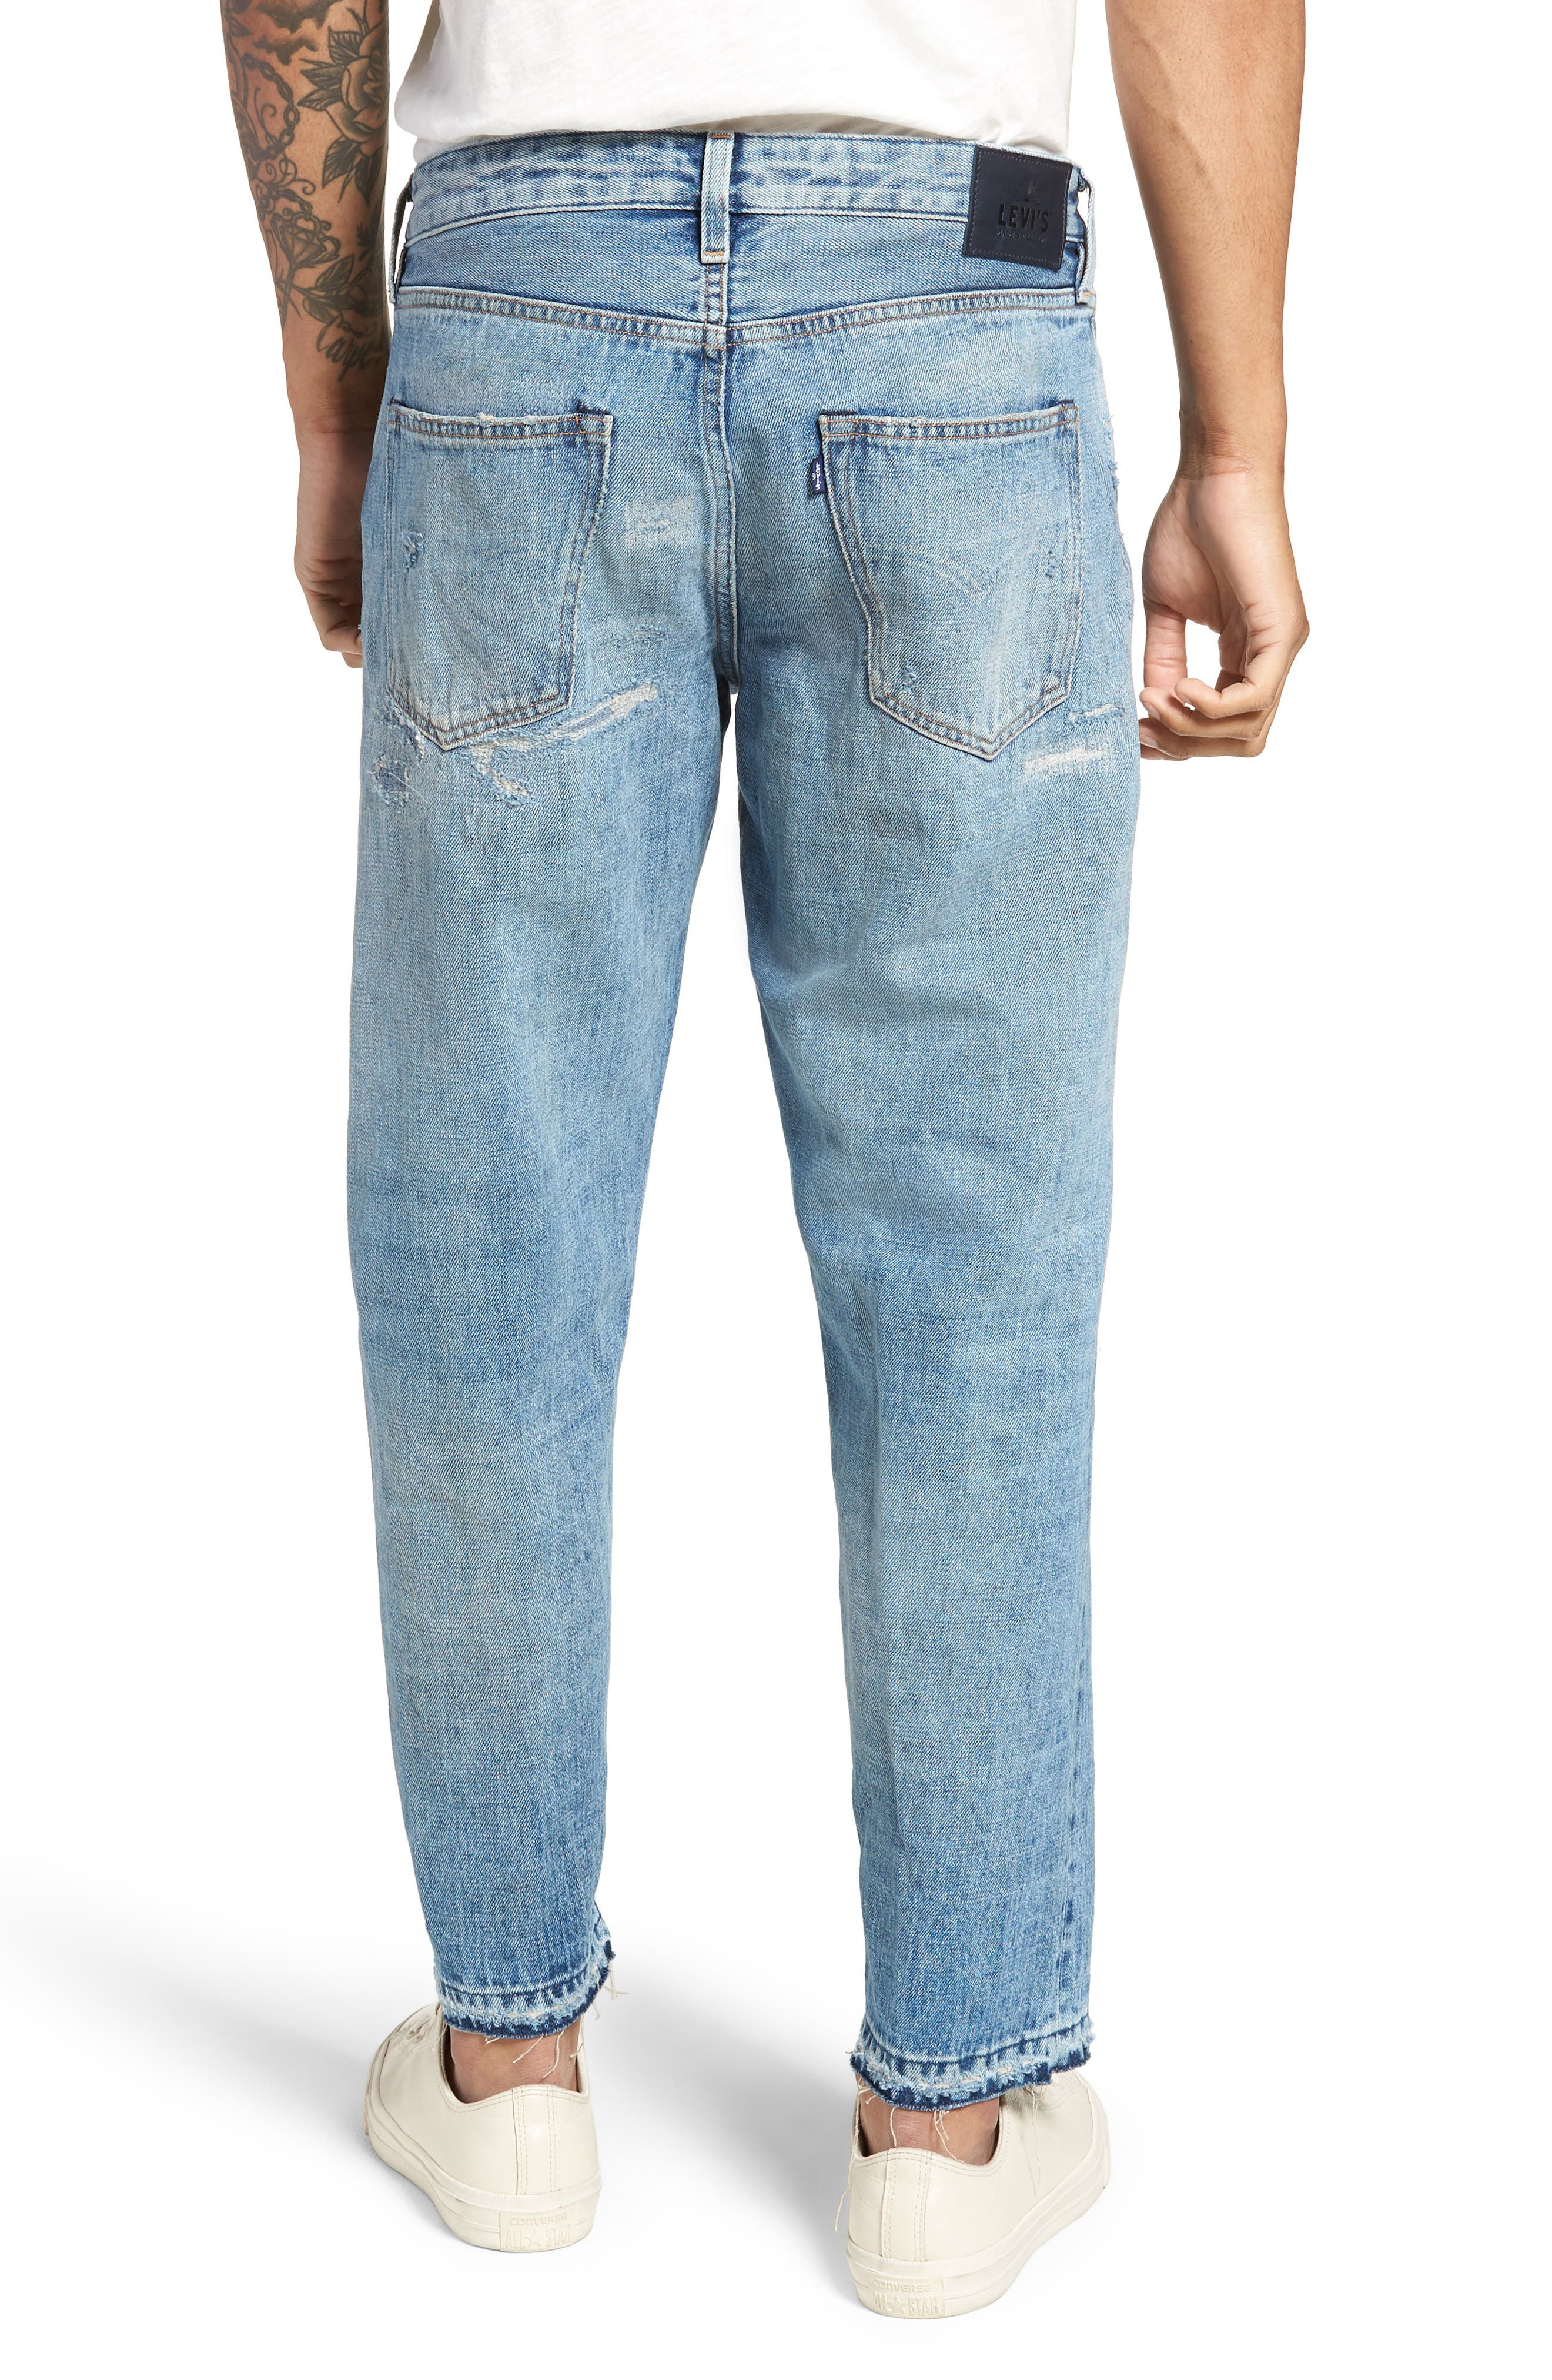 Draft Taper Standard Fit Jeans,                             Alternate thumbnail 2, color,                             Banzai Pipeline